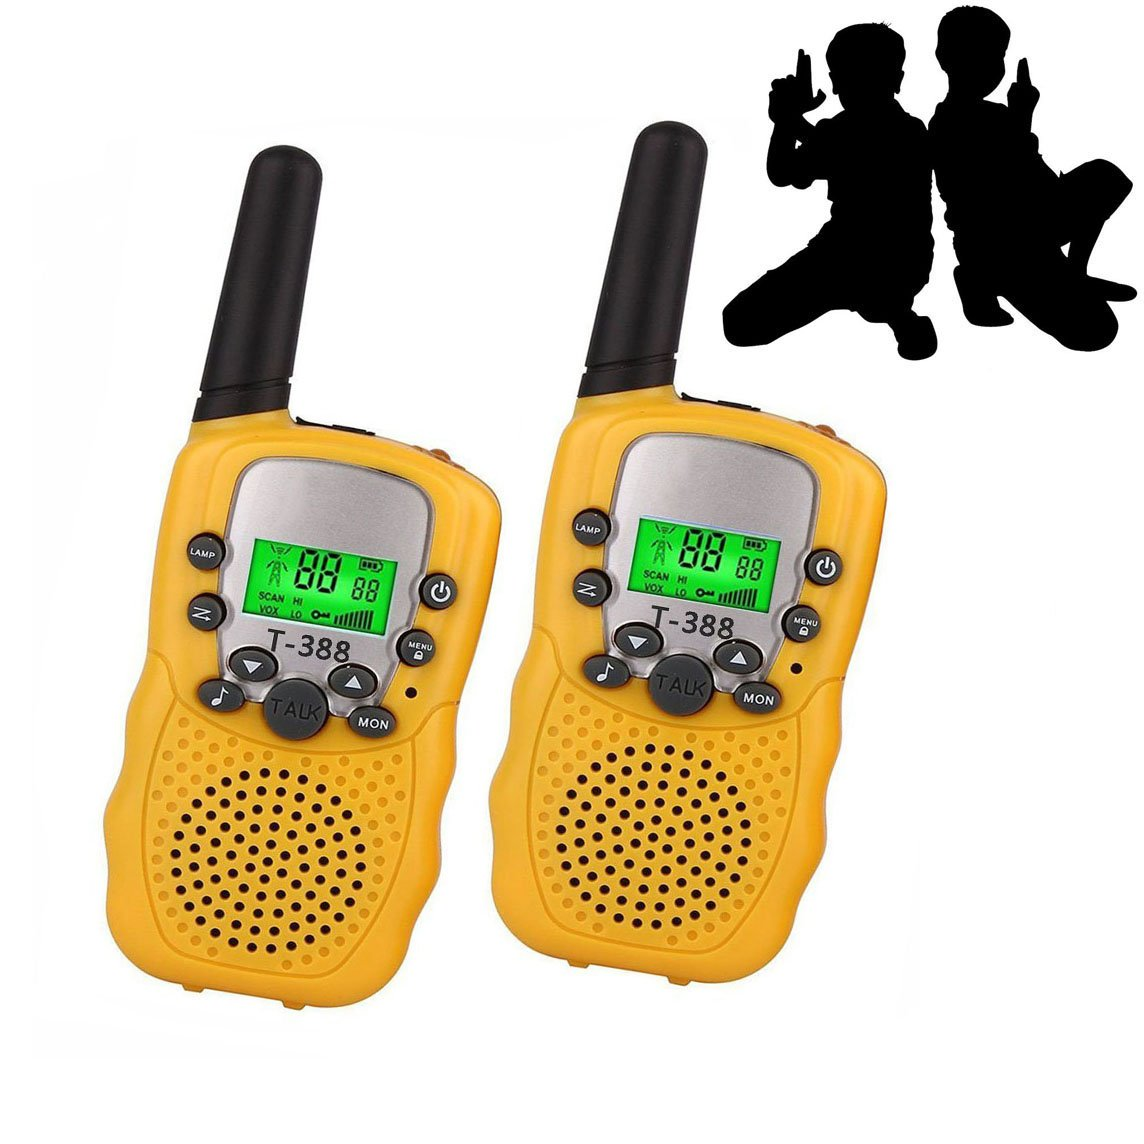 JRDBS WINL Gifts For Teen Girls Birthday 7 Year Old Girl Walkie Talkies 6 14 Boys Kids Toys DaughterBest 8